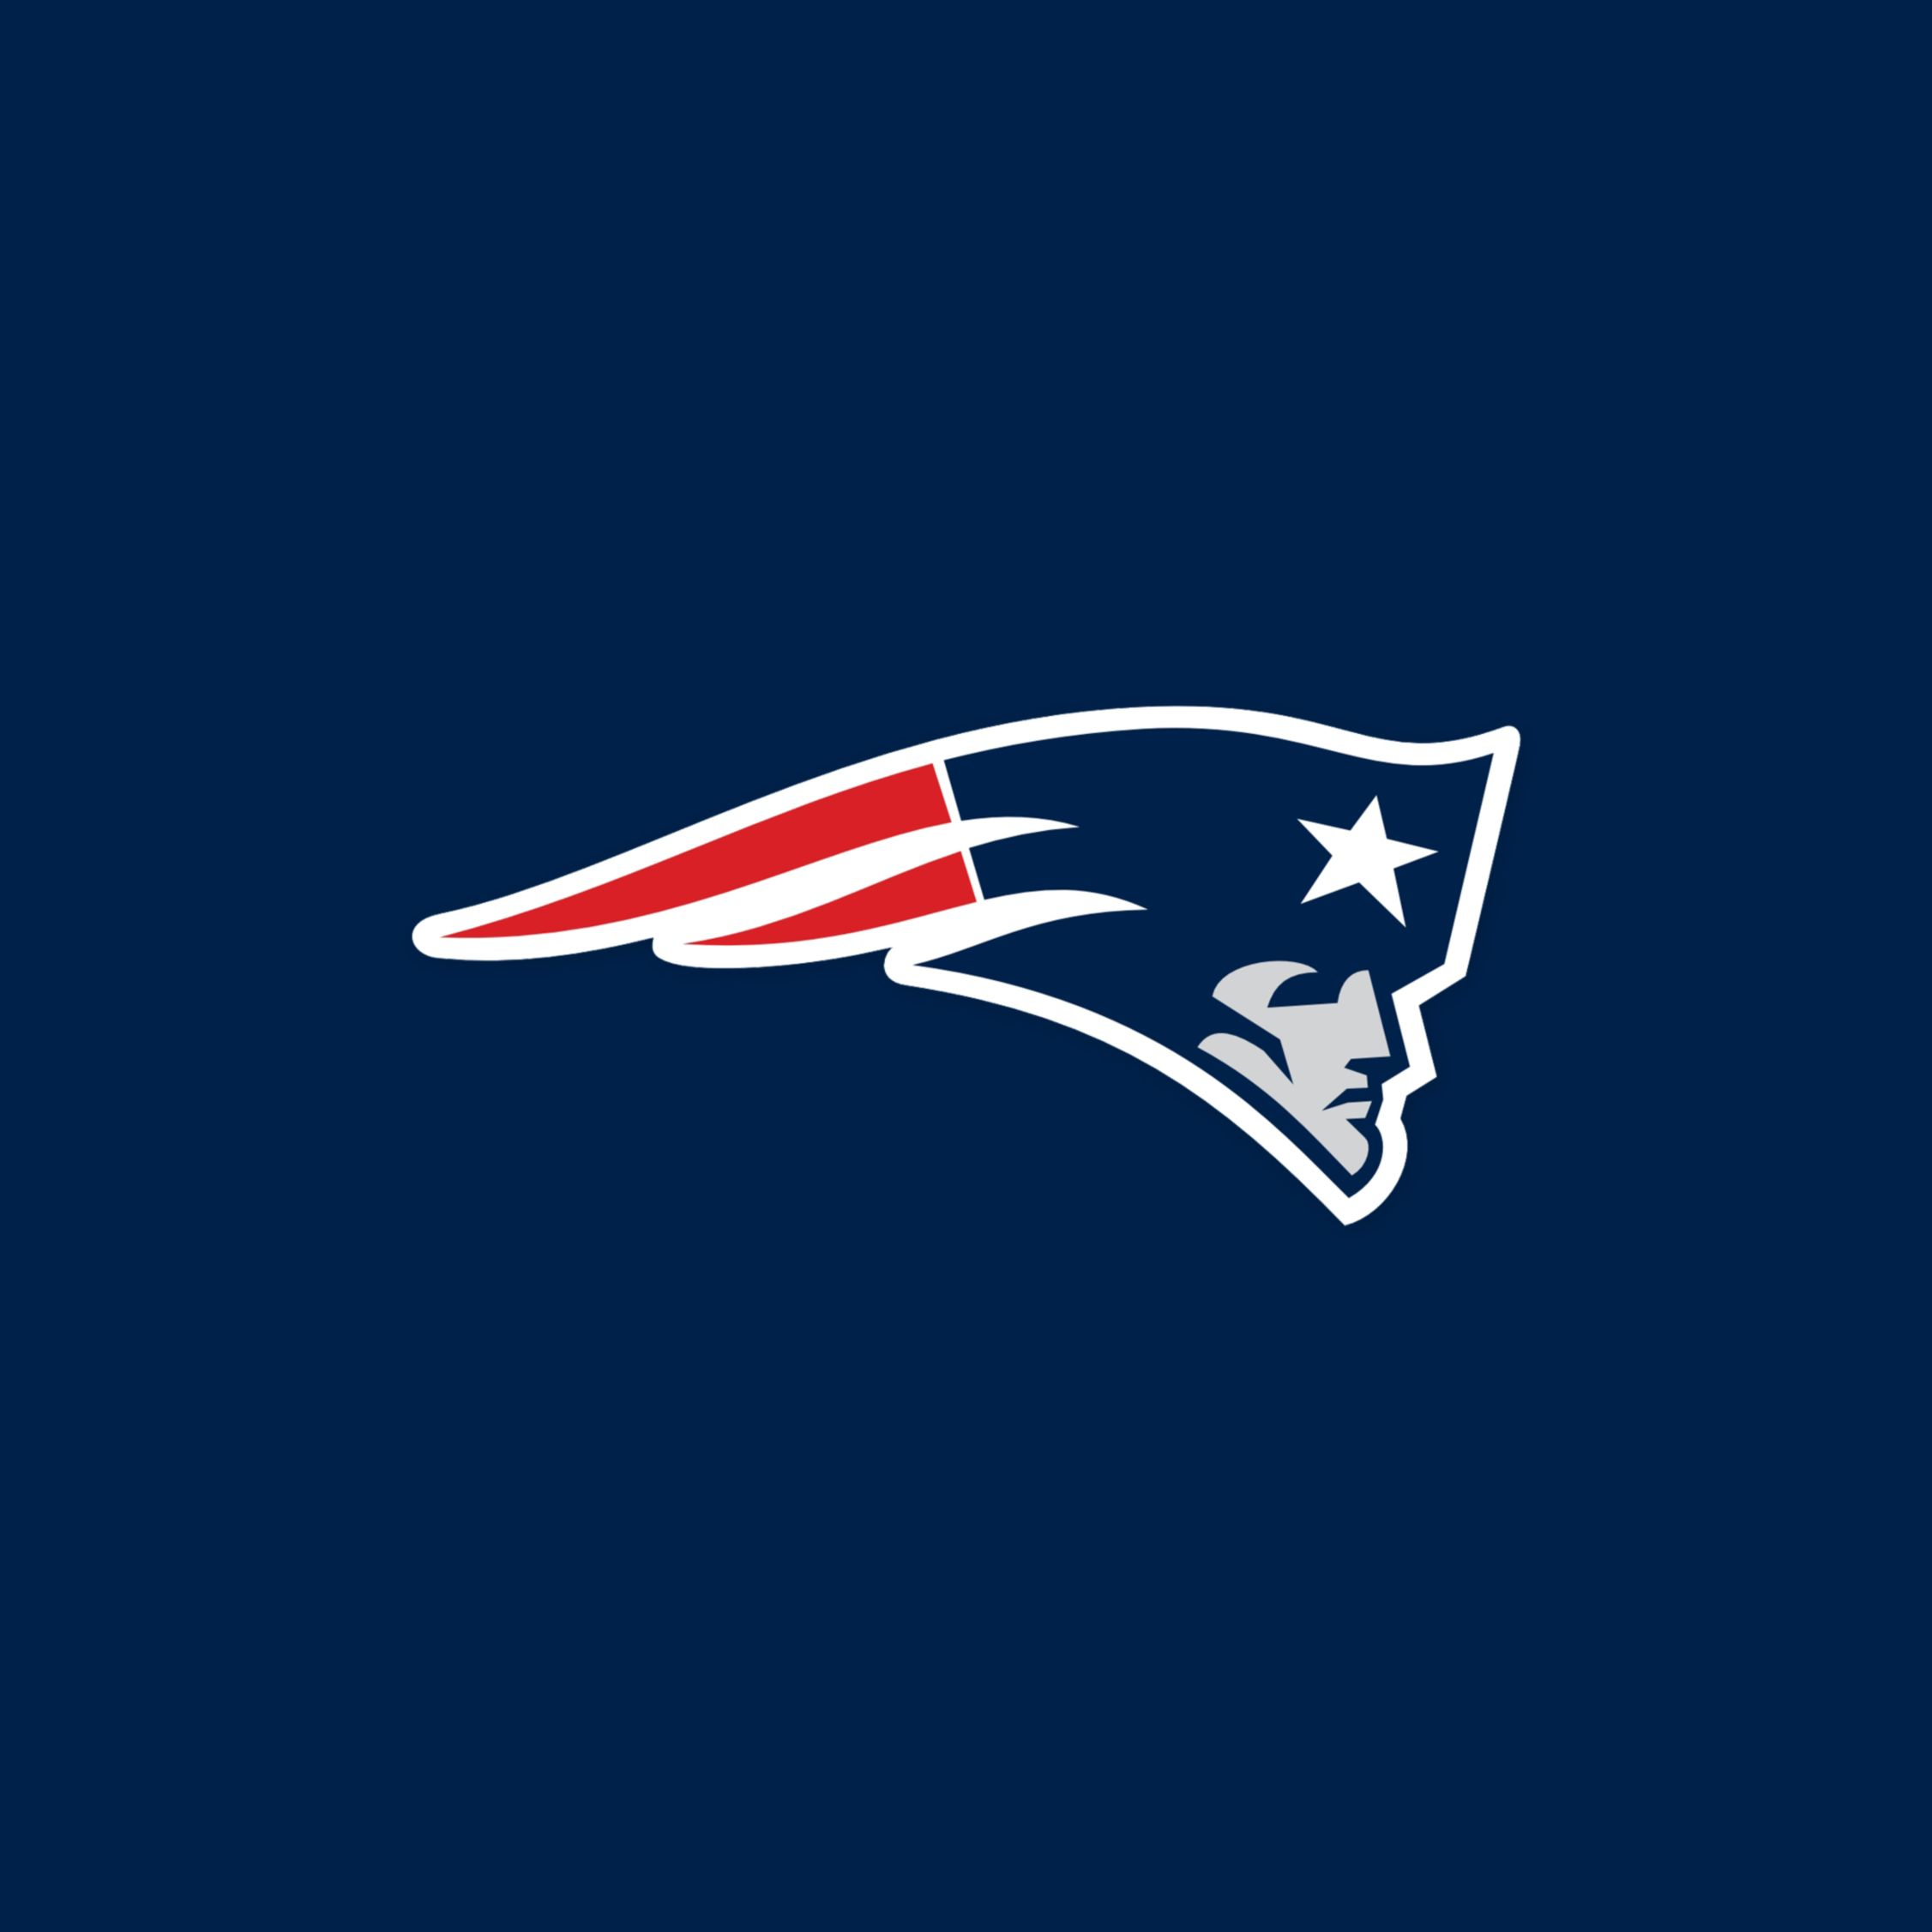 Patriots Android 2048x2048 Wallpaper